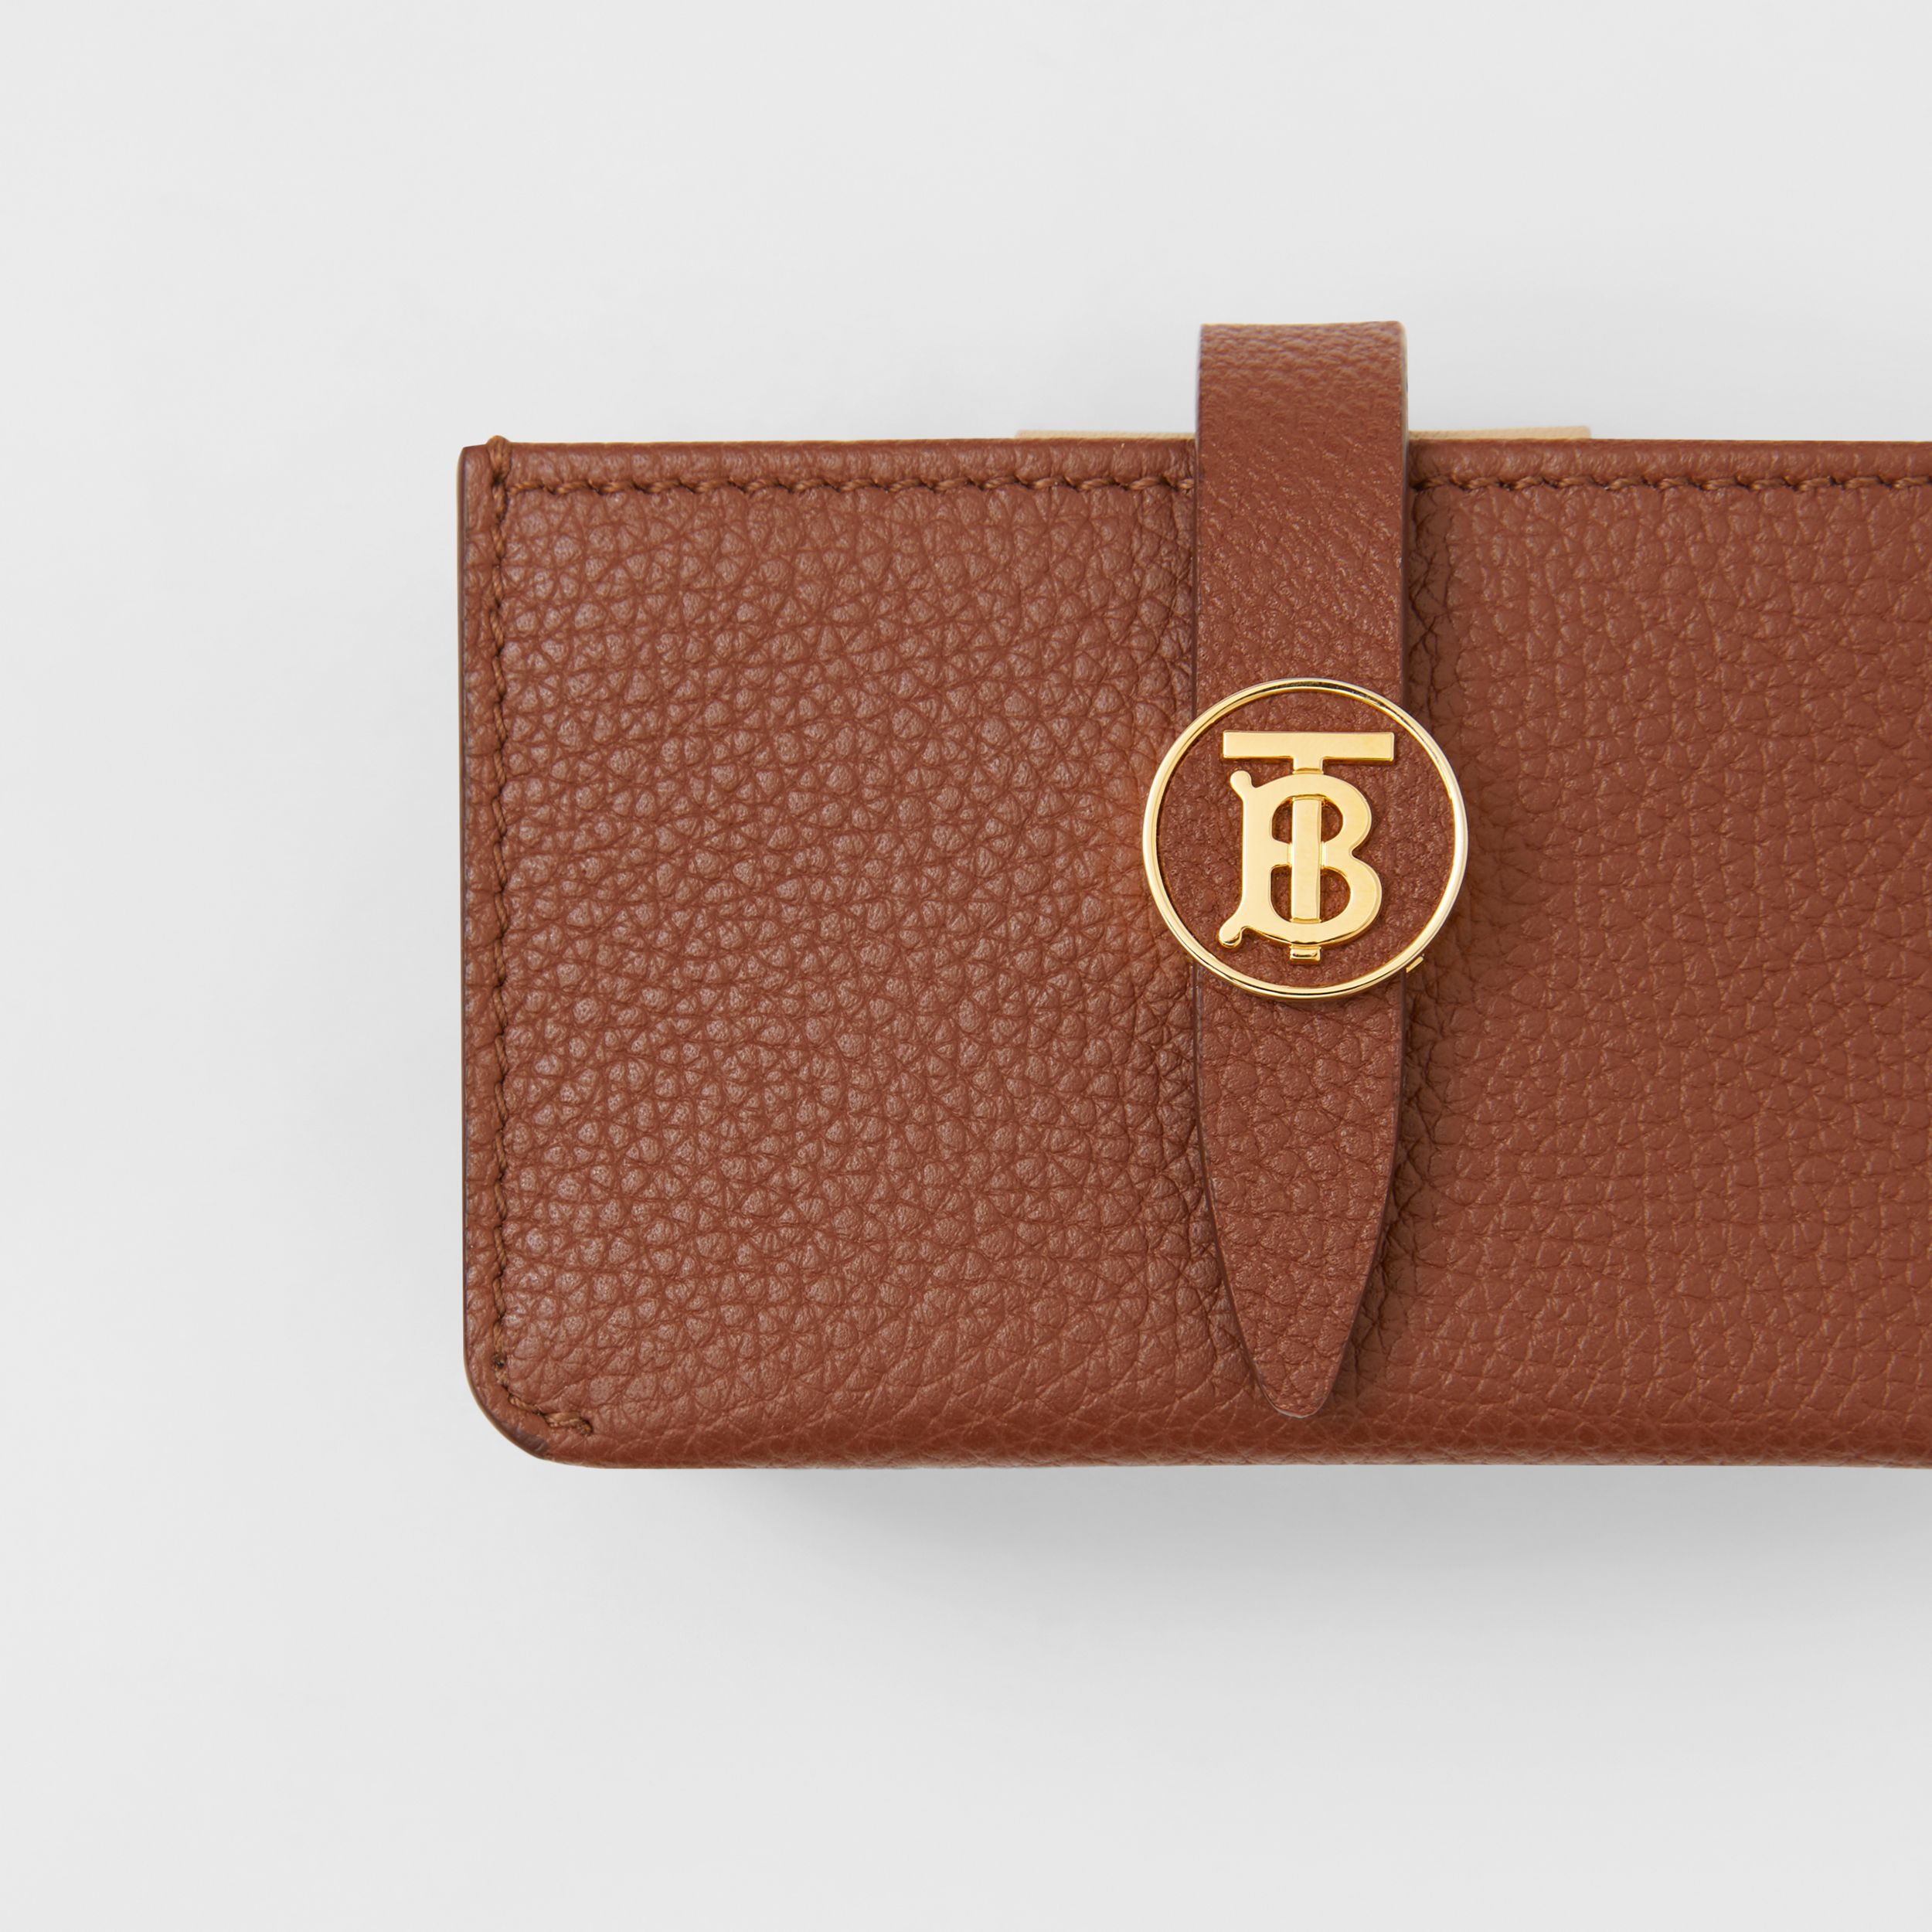 Monogram Motif Grainy Leather Card Case in Tan - Women | Burberry - 2